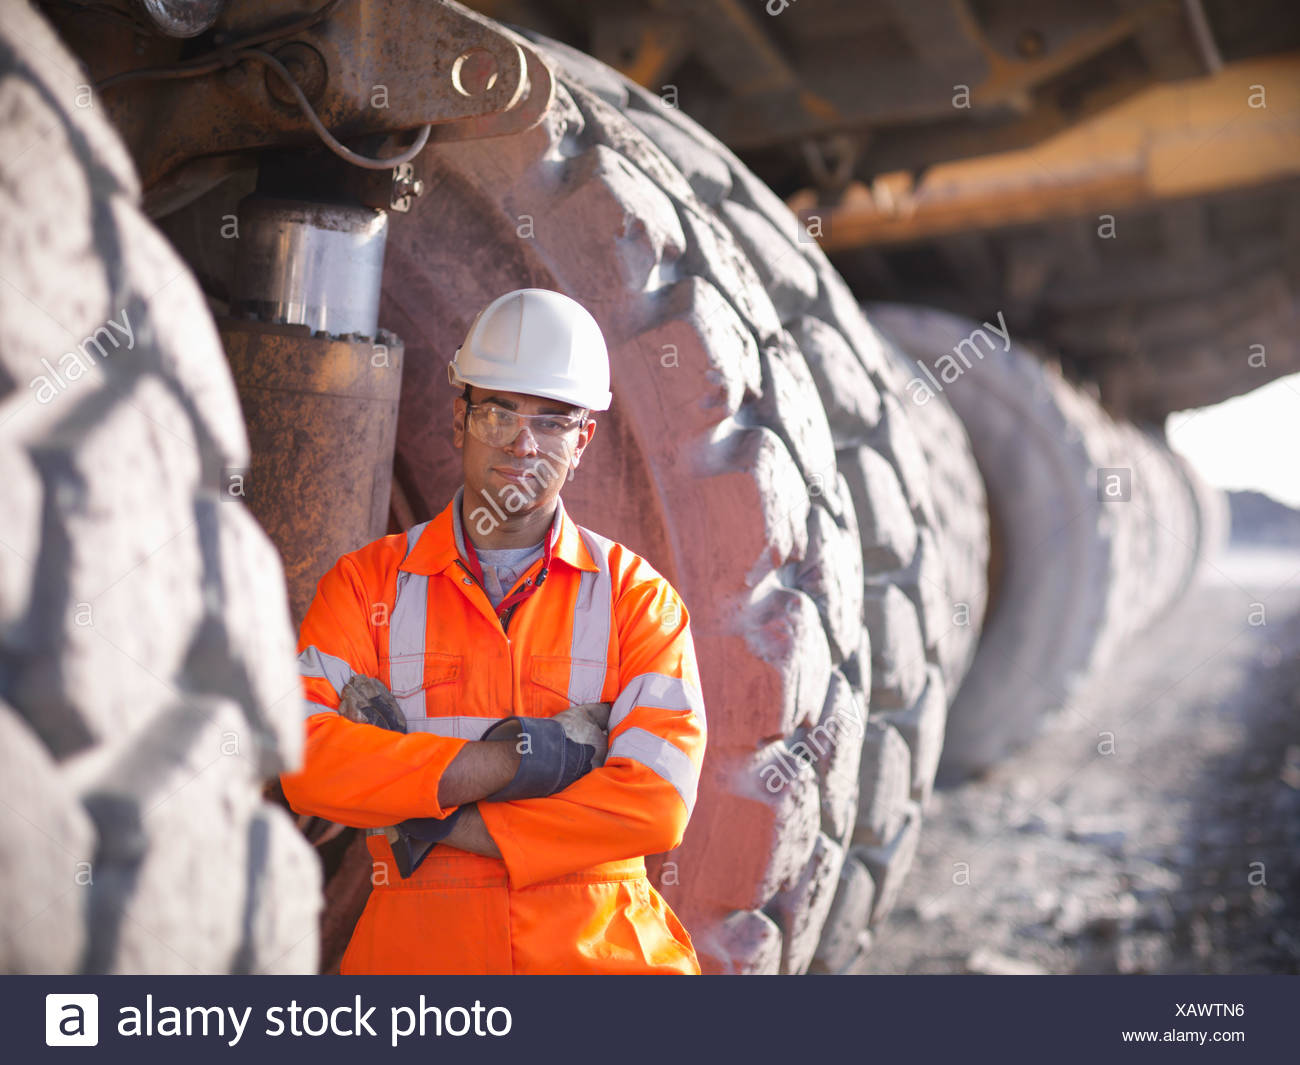 Worker standing by trucks in coal mine - Stock Image